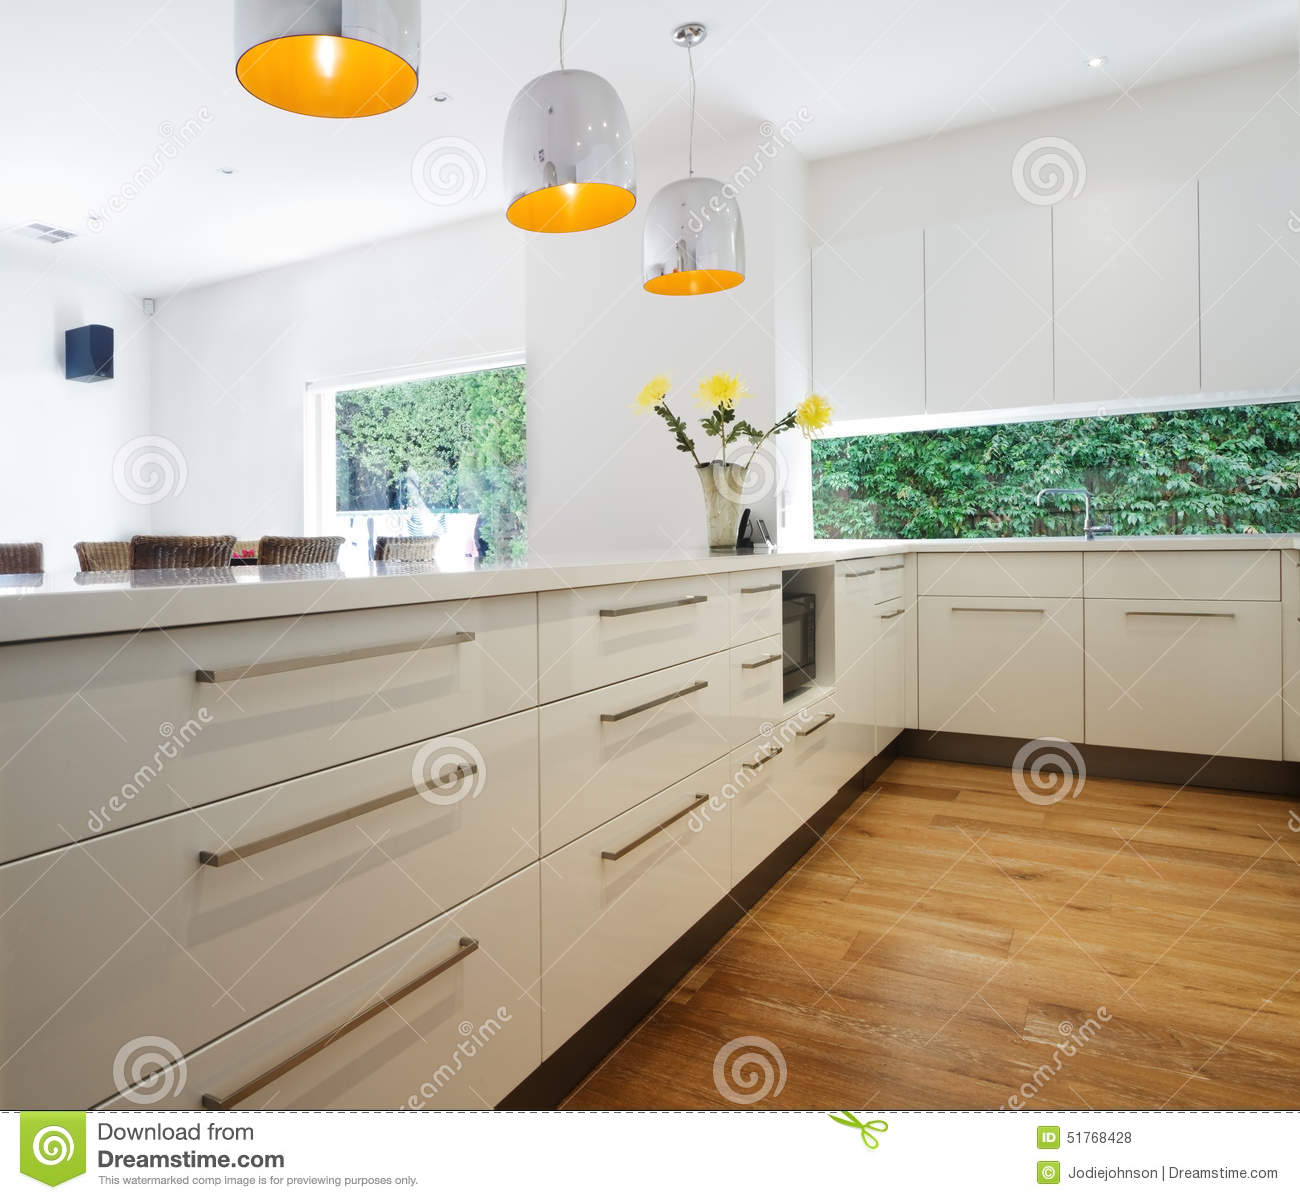 Luxury Home Kitchen Island With Hanging Lights Stock Image